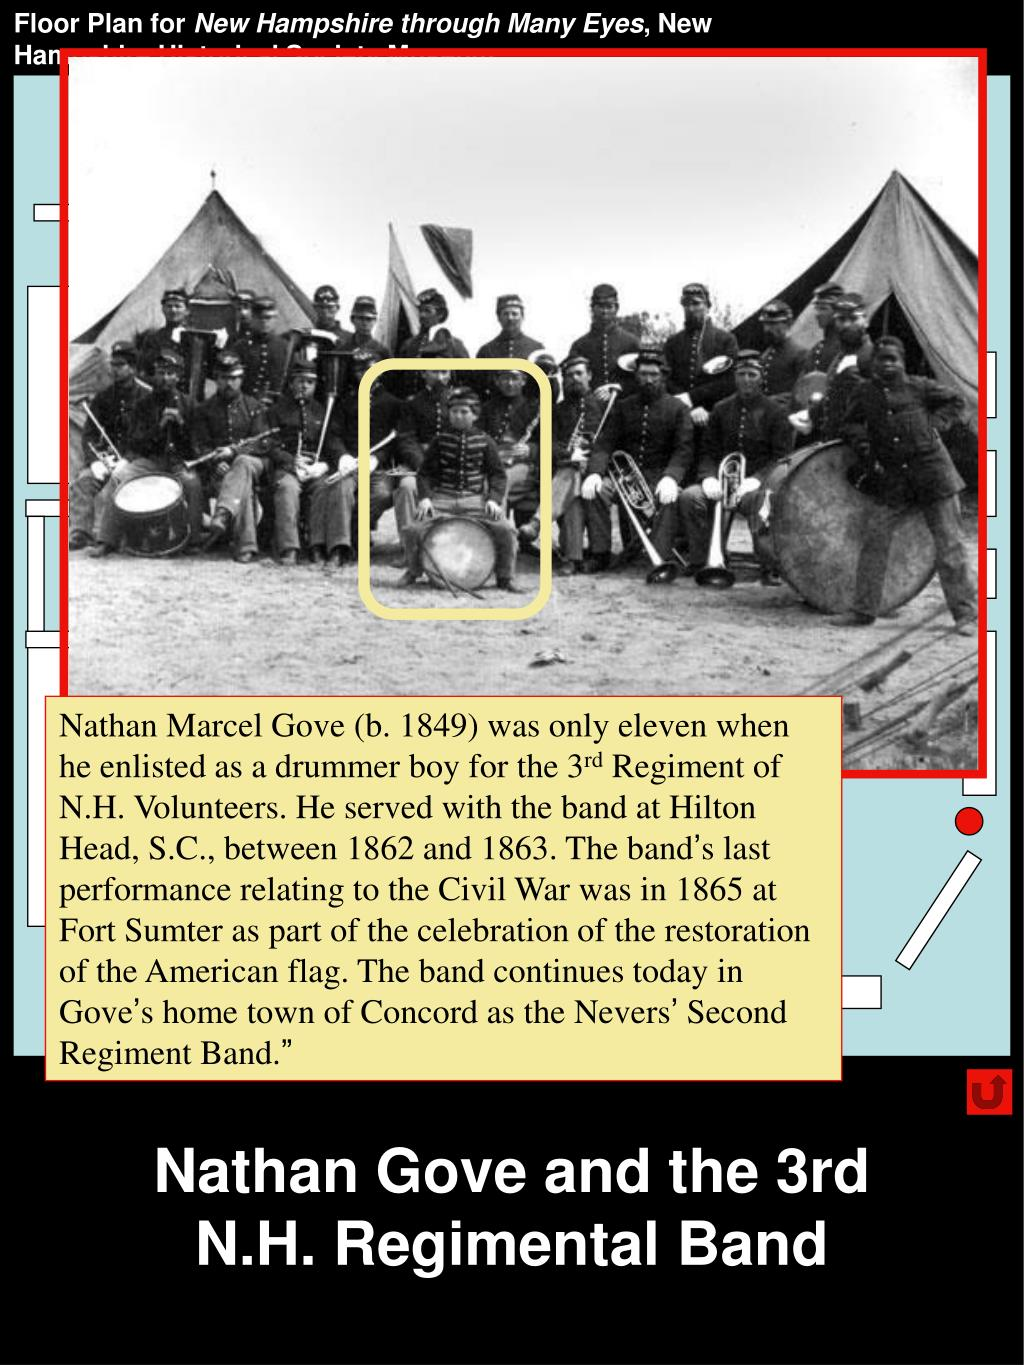 Nathan Gove and the 3rd N.H. Regimental Band